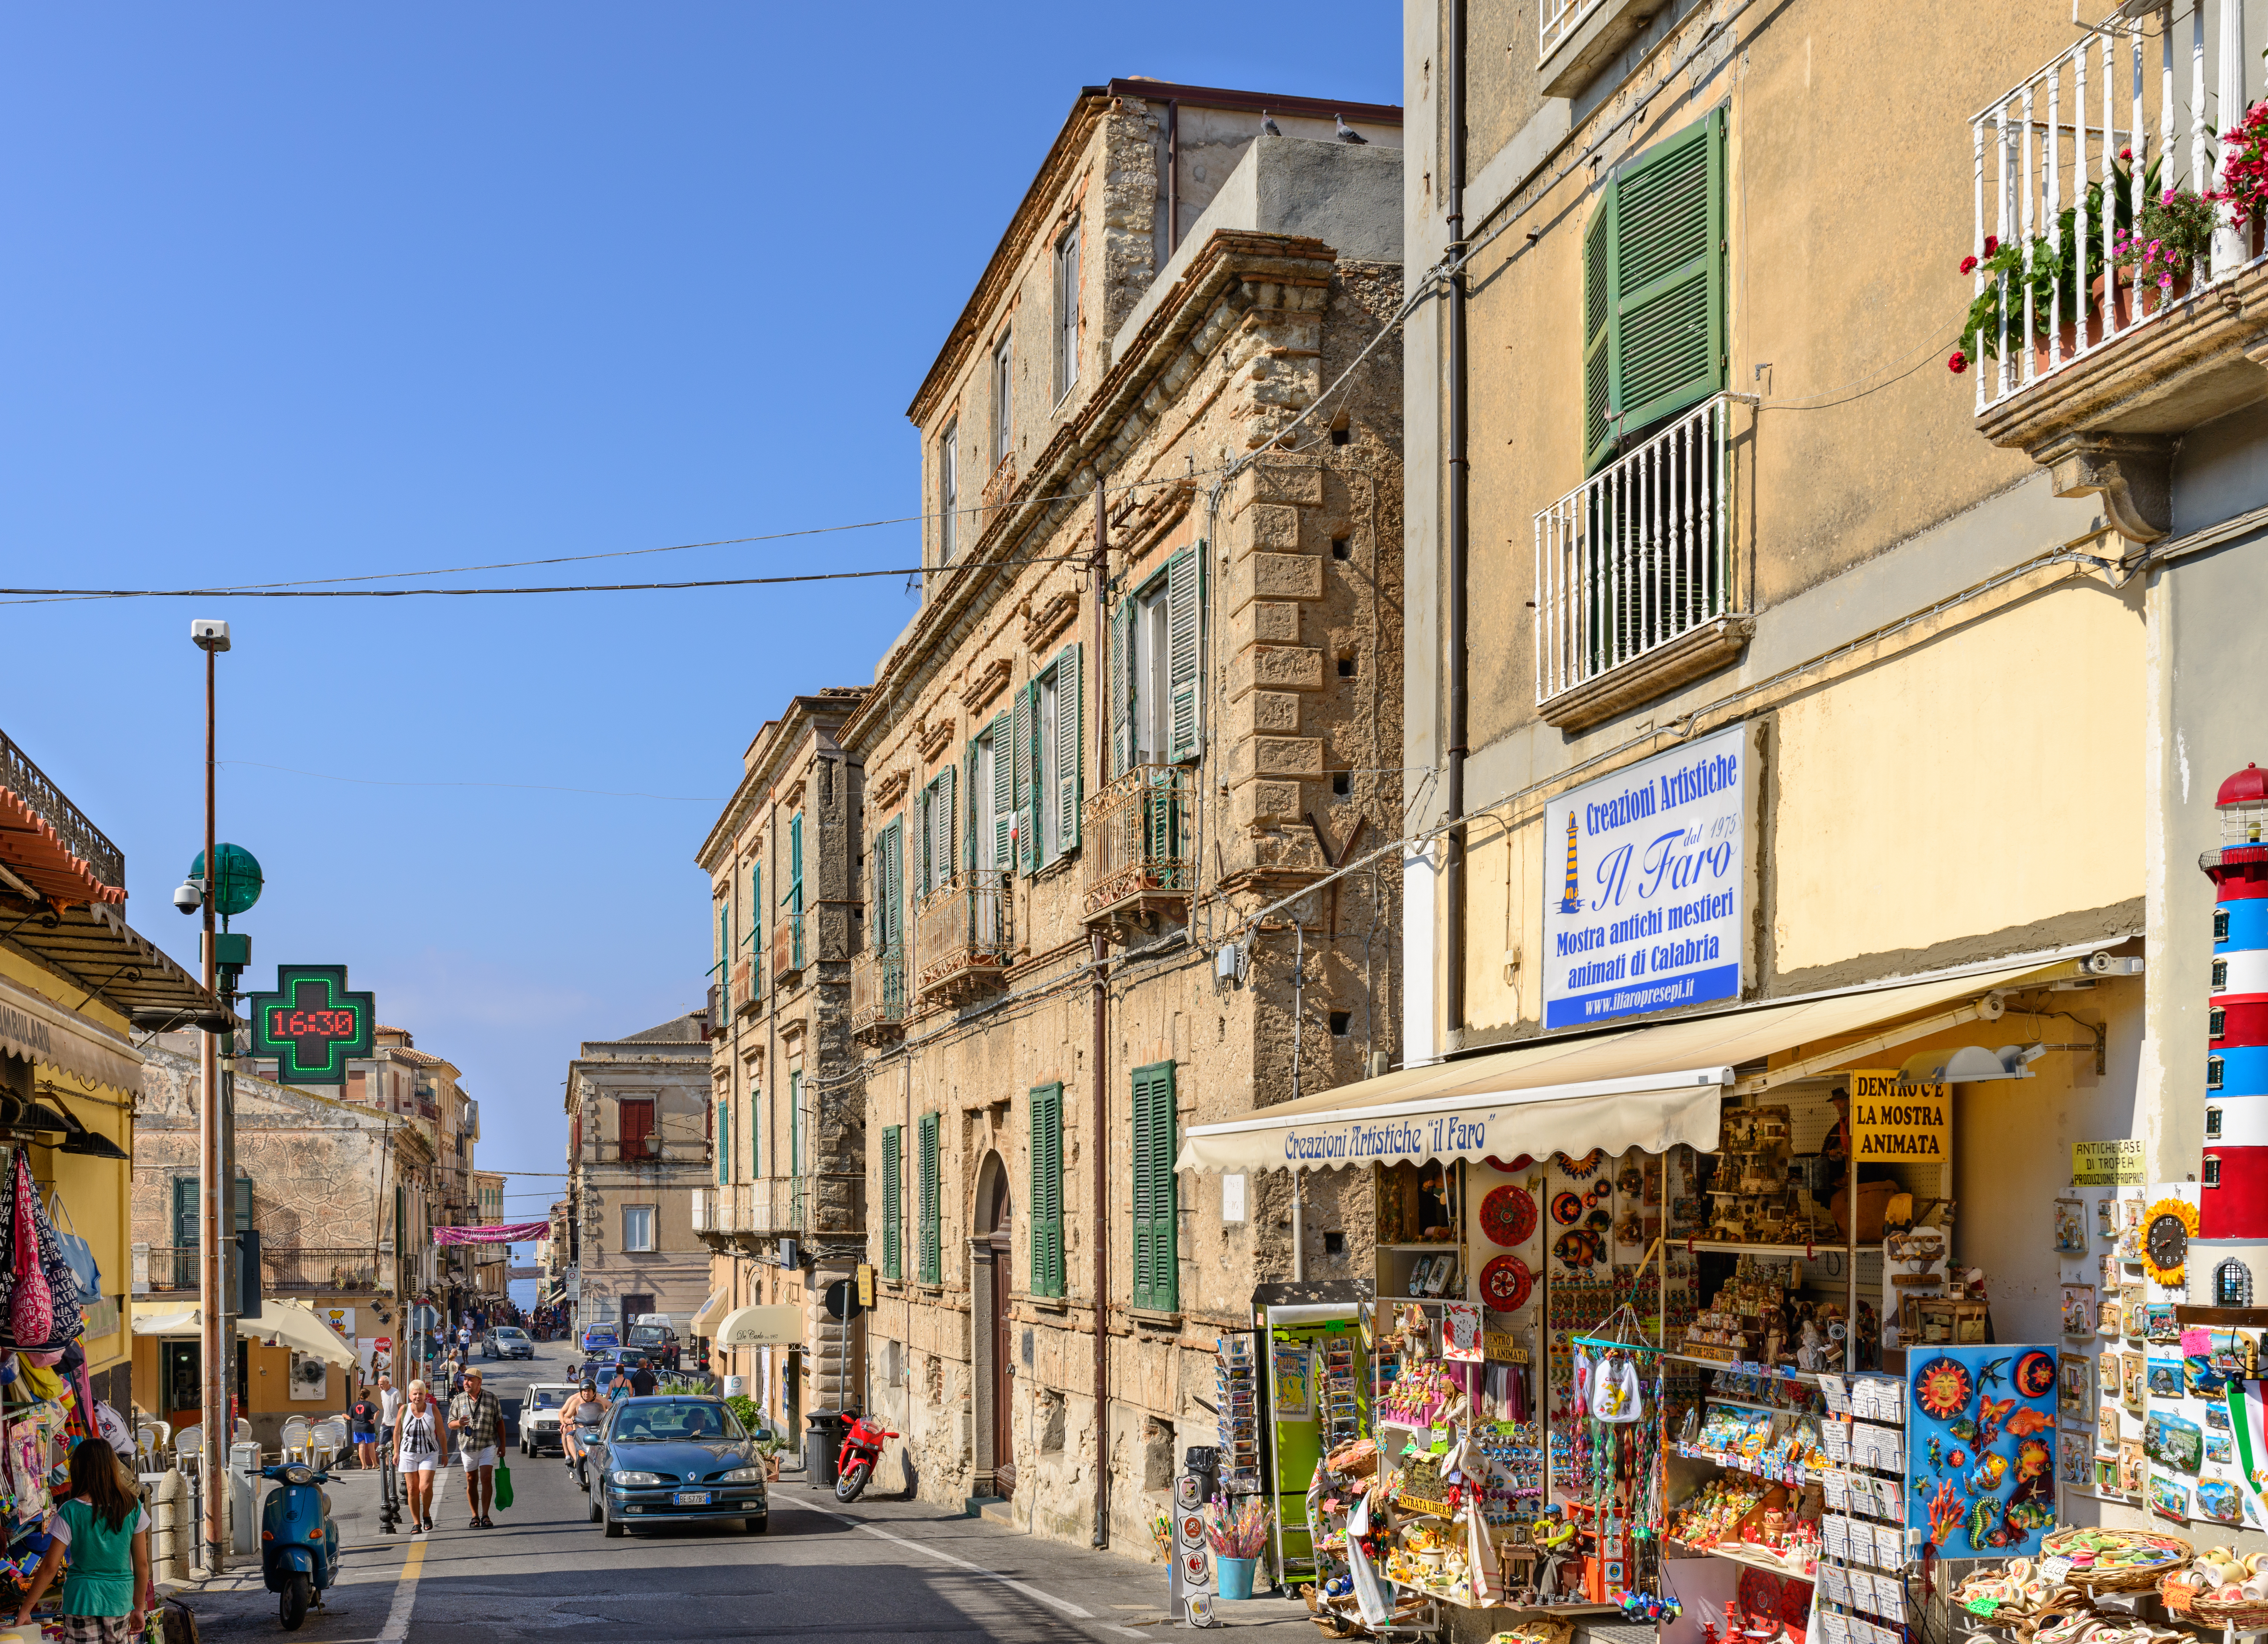 Pin types of houses on pinterest for Types of houses in italy